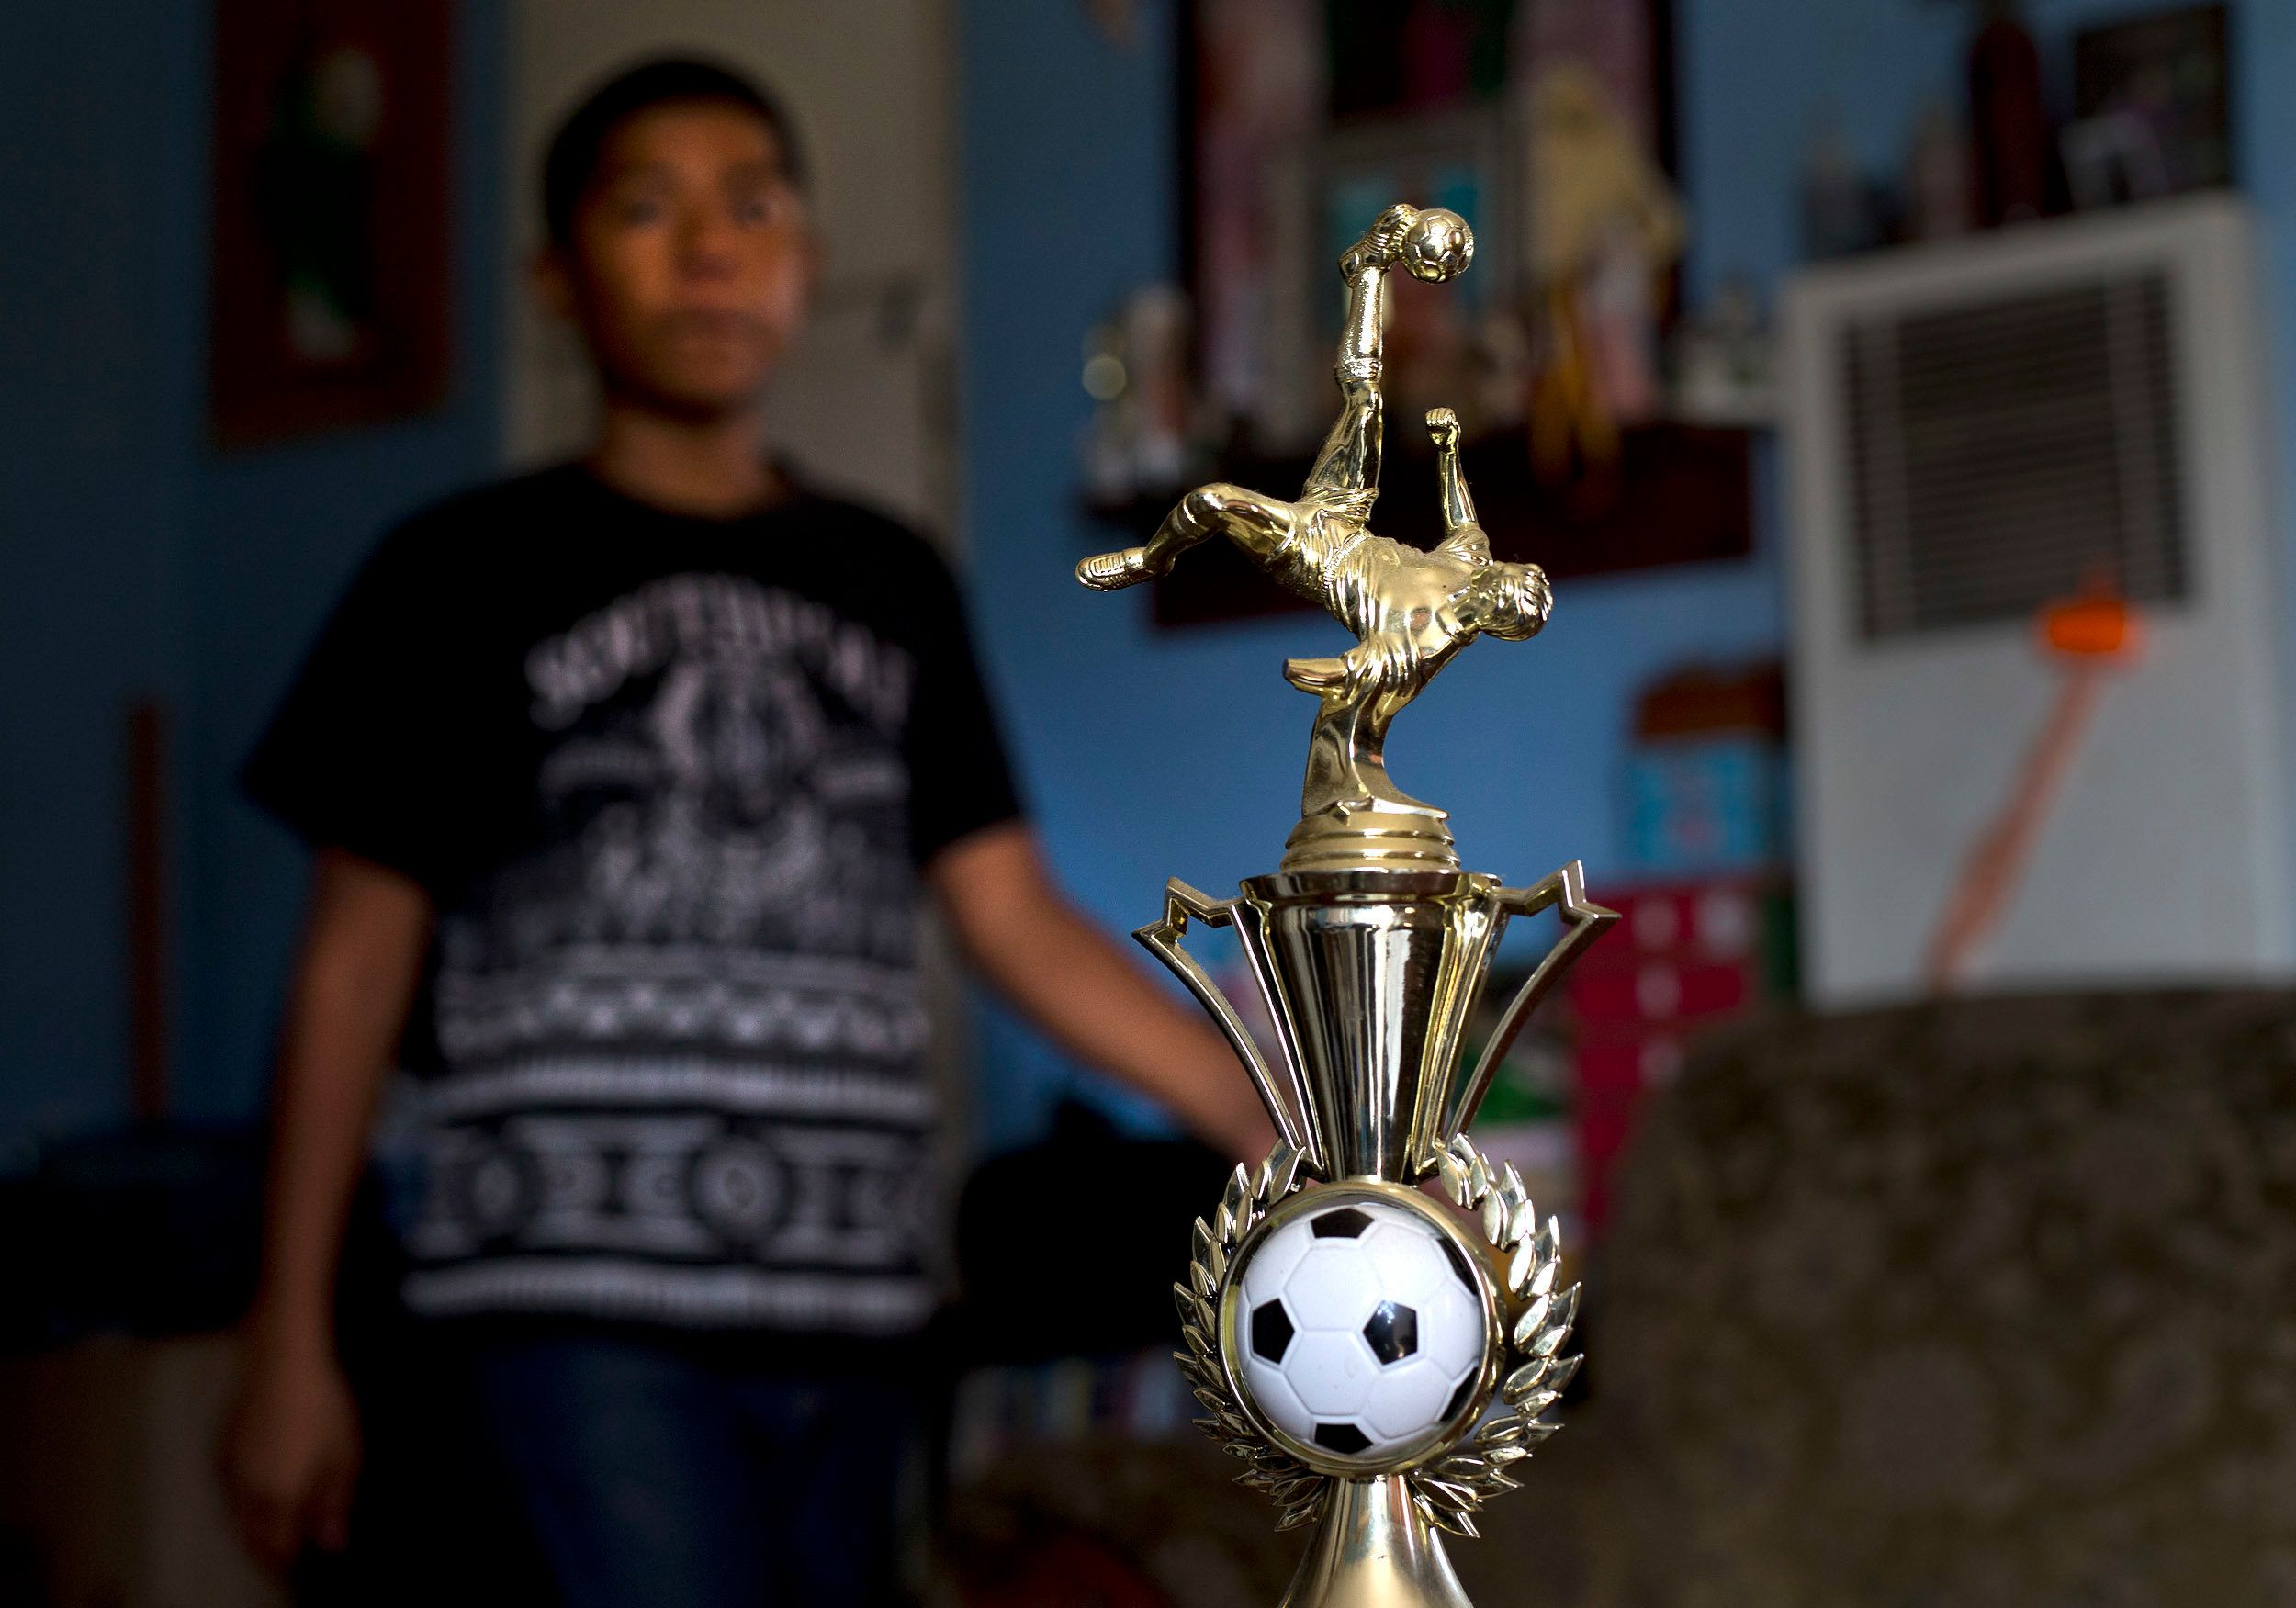 In August 2018, Cesar, 13, walks past the championship trophy he and his soccer team won.